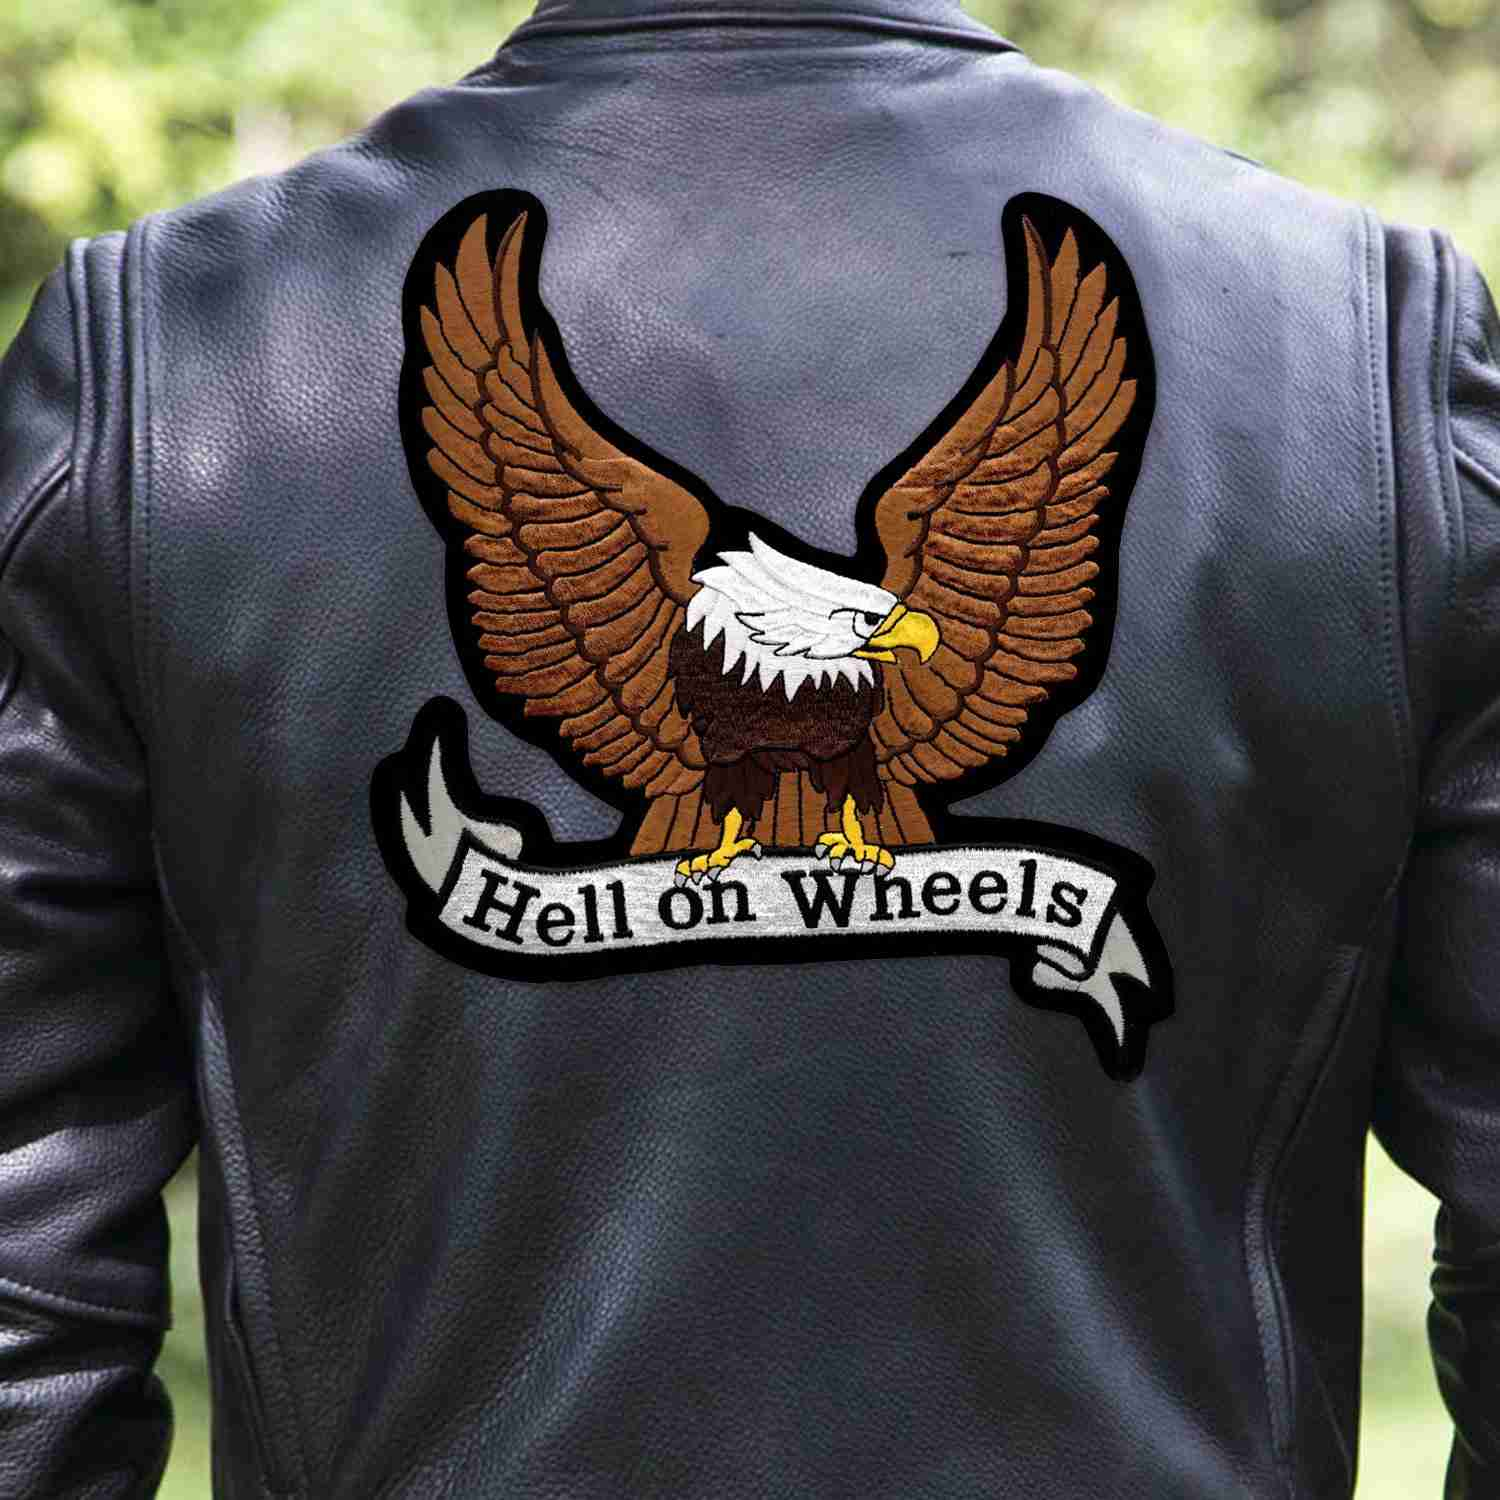 Biker Jacket With Patch